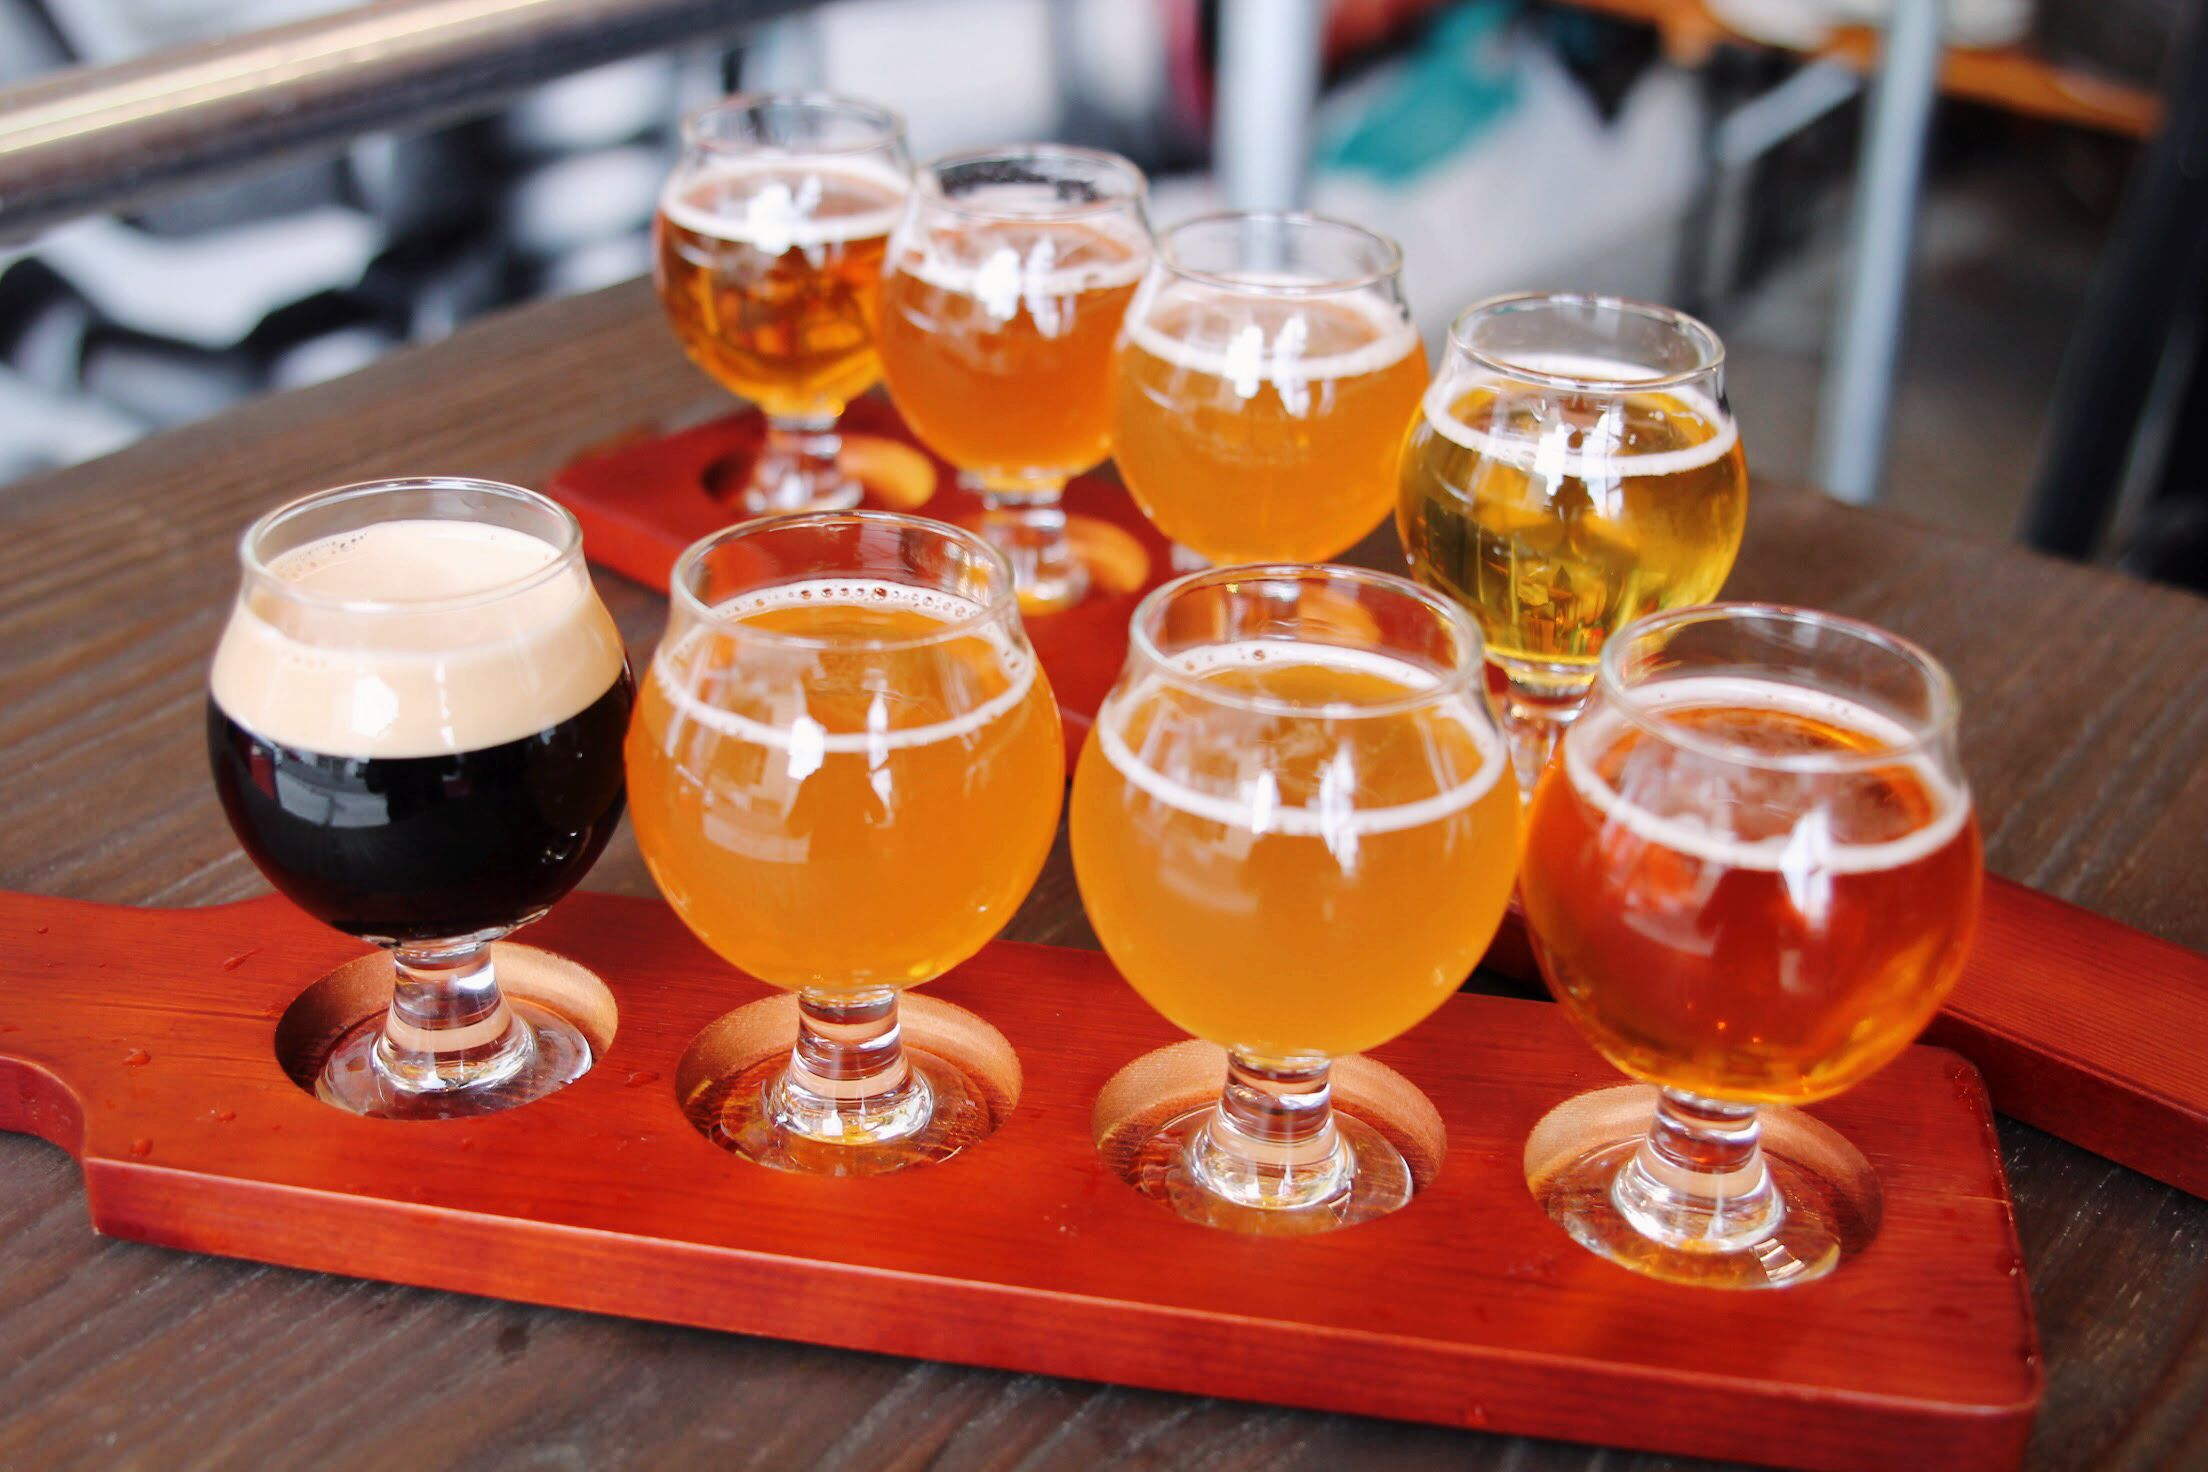 Flight Of Beers At Federation Brewing Oakland Craftbeer Beer Craft Beer Beer Brewing